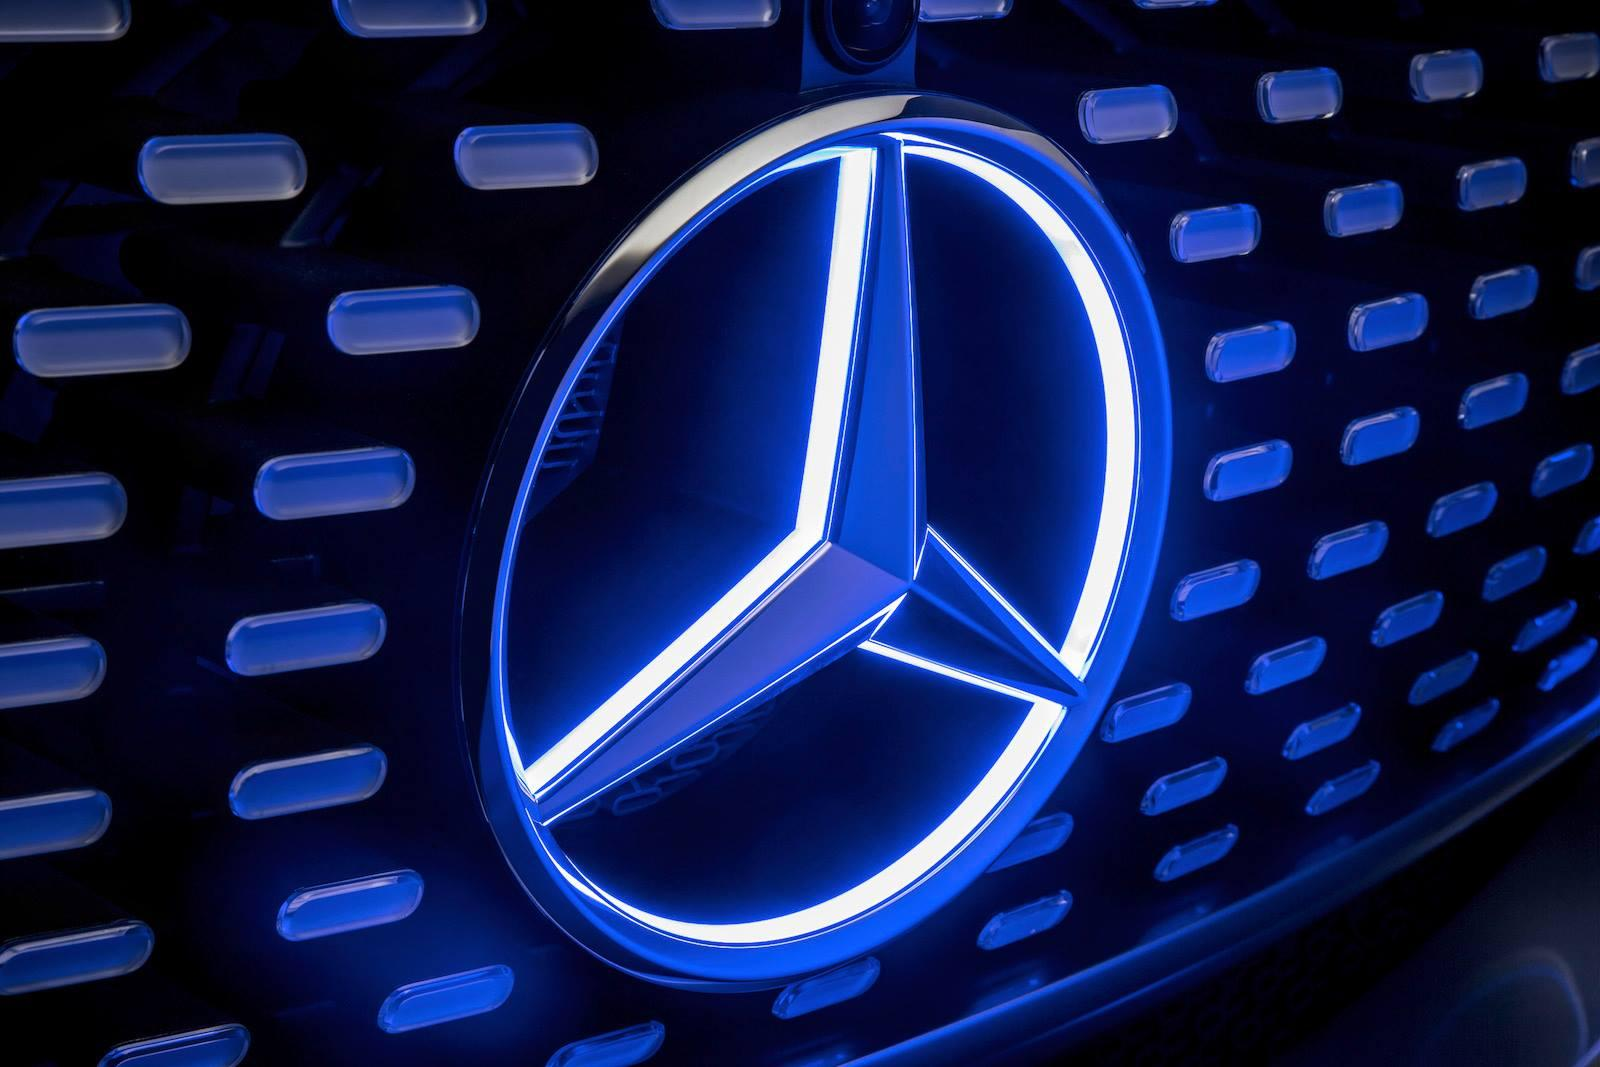 More Teasers Released For Mercedes Concept Debuting At